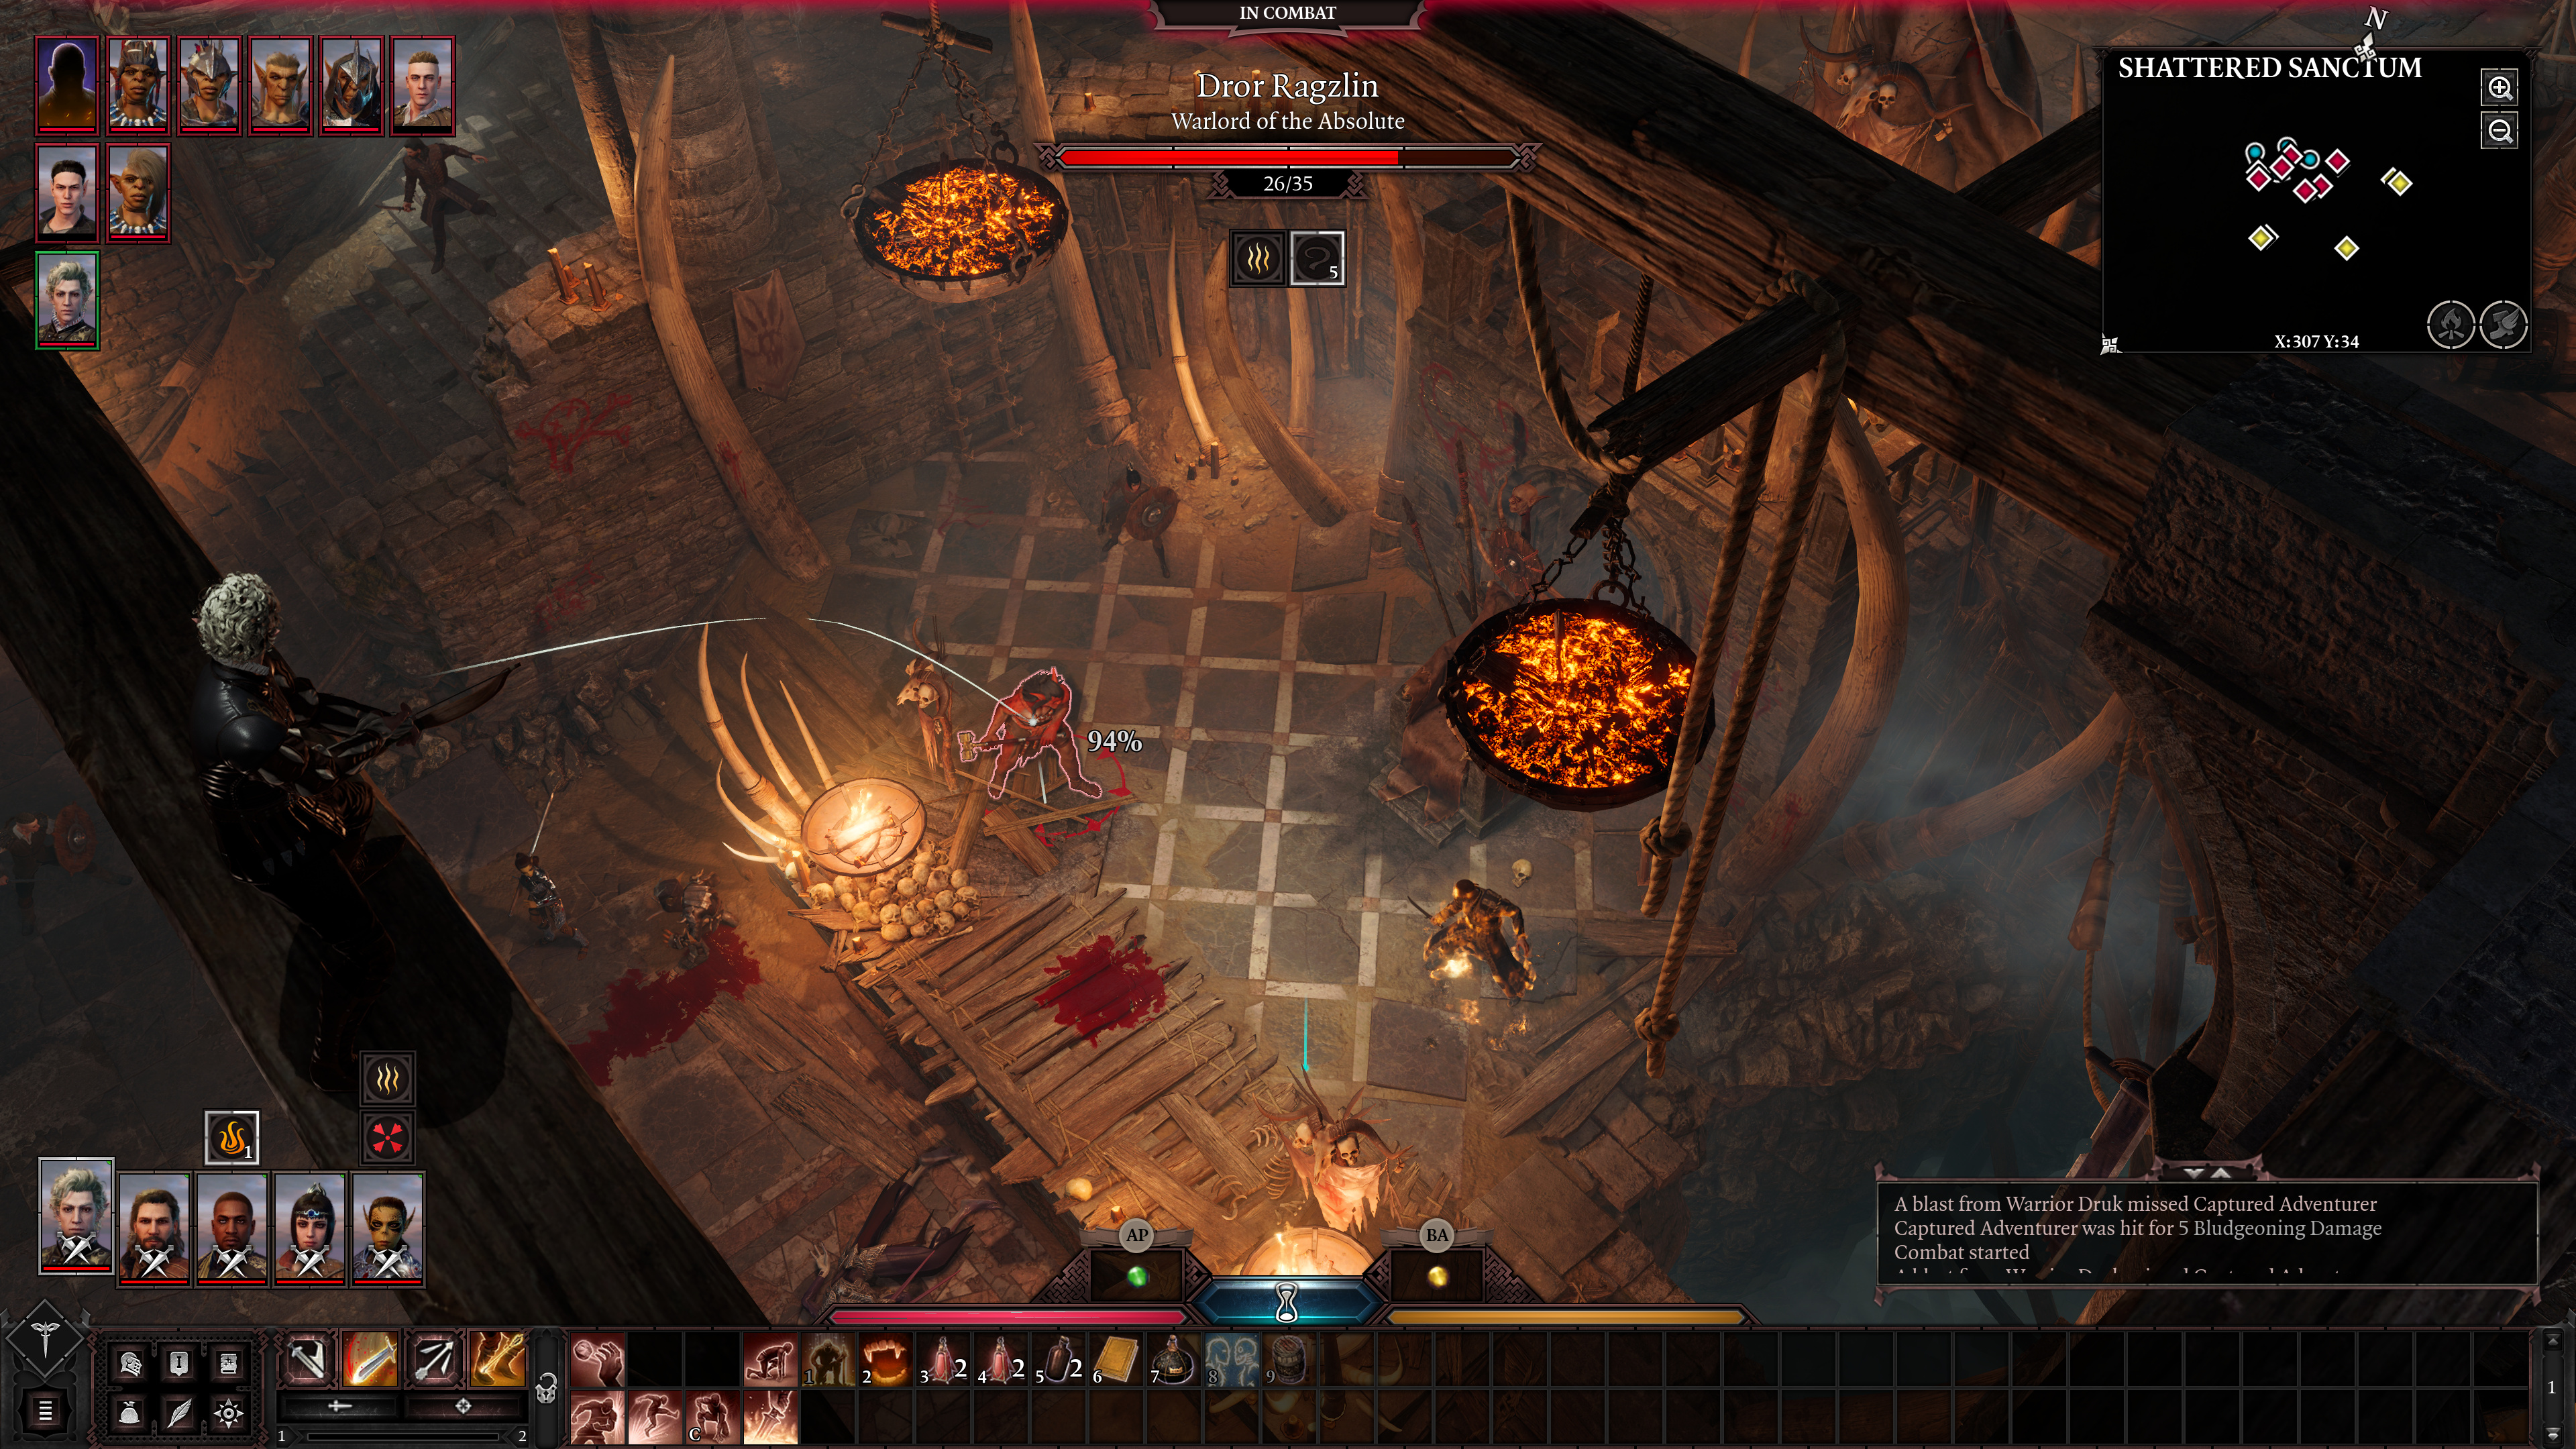 Baldur S Gate 3 Tries To Capture The Chaos Of D D Gone Horribly Wrong